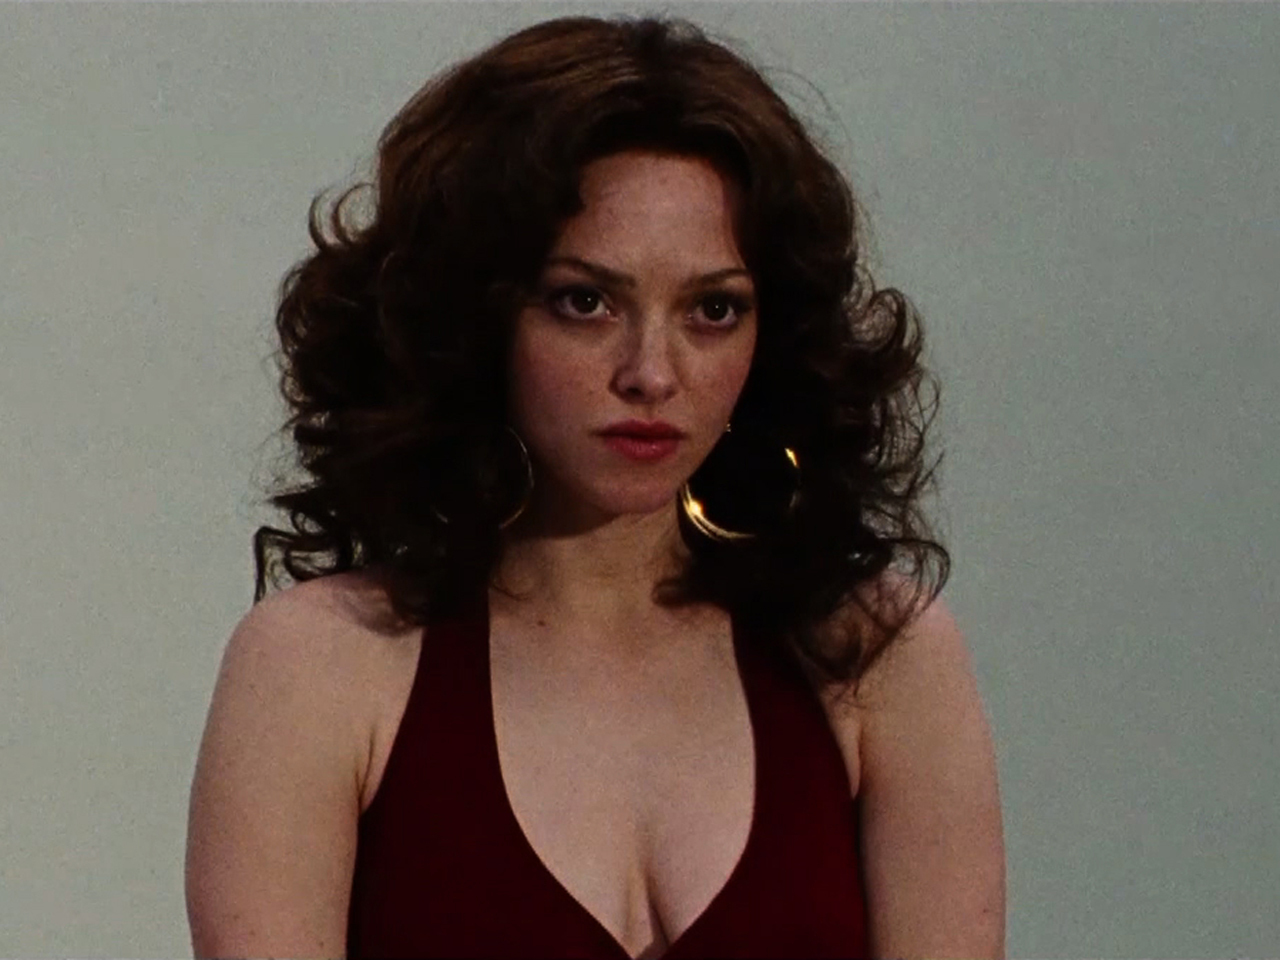 linda-lovelace-when-she-was-young